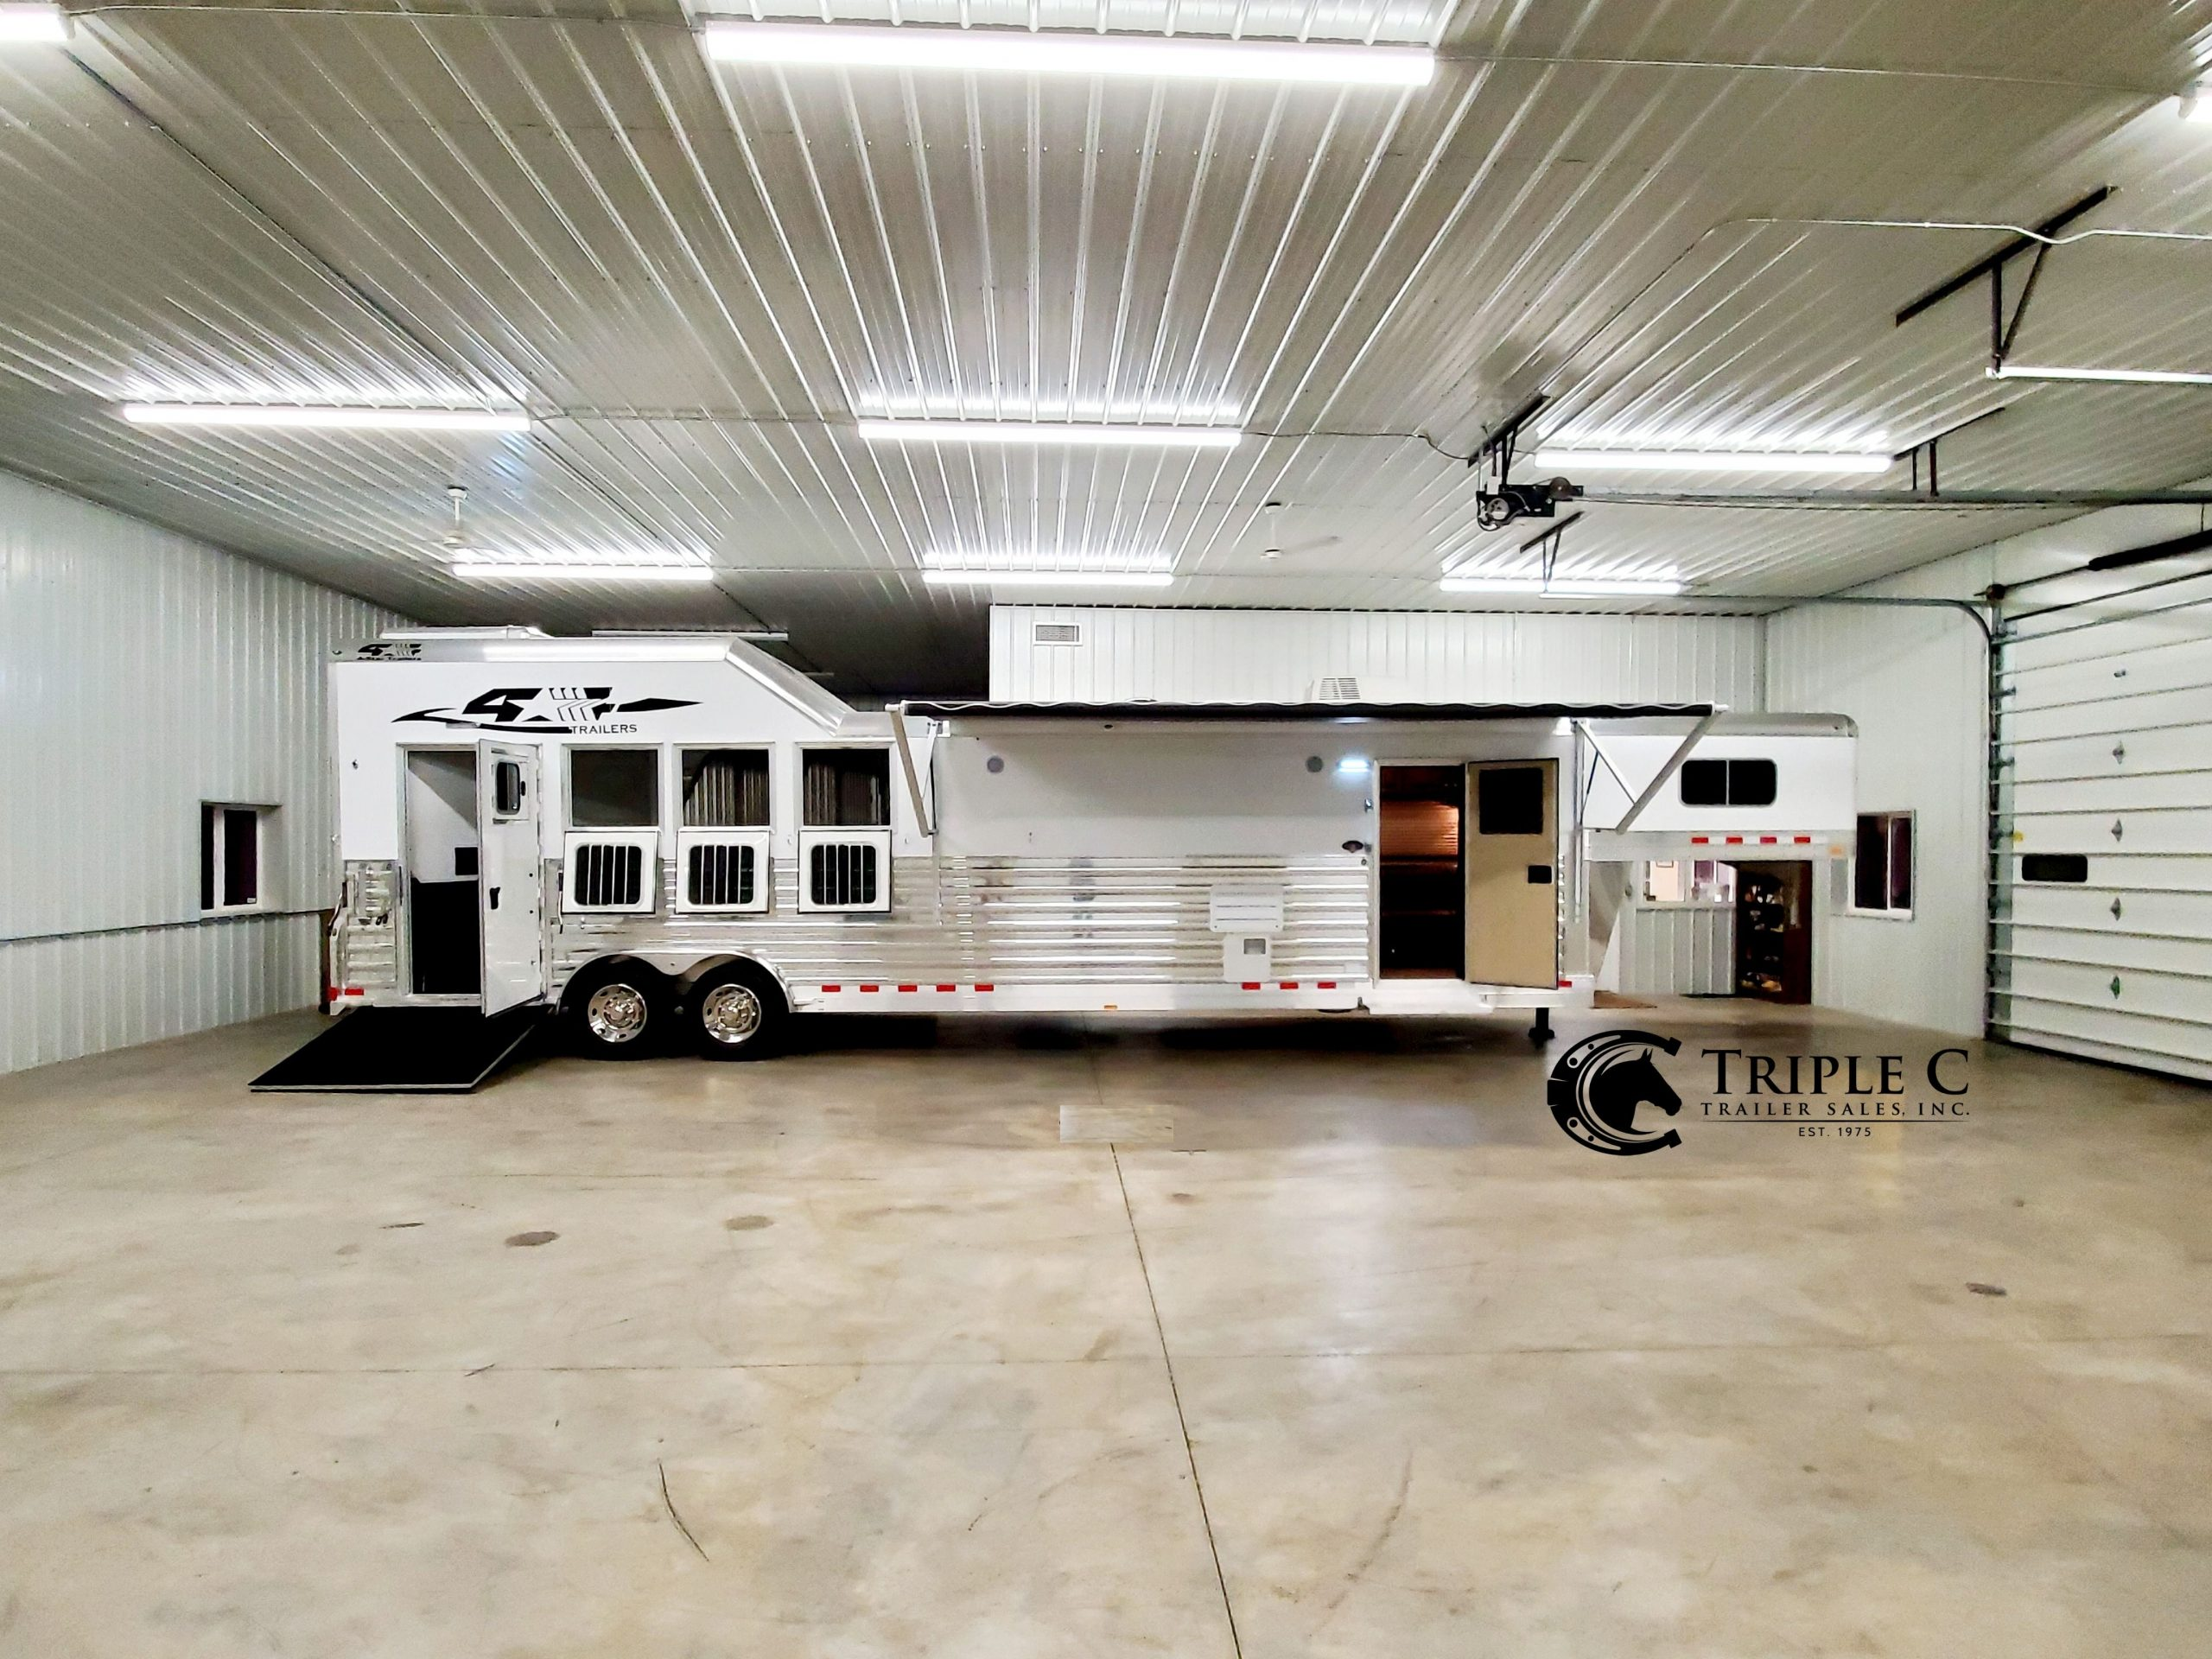 4-Star Trailers - Triple C Trailer Sales - home slider 5